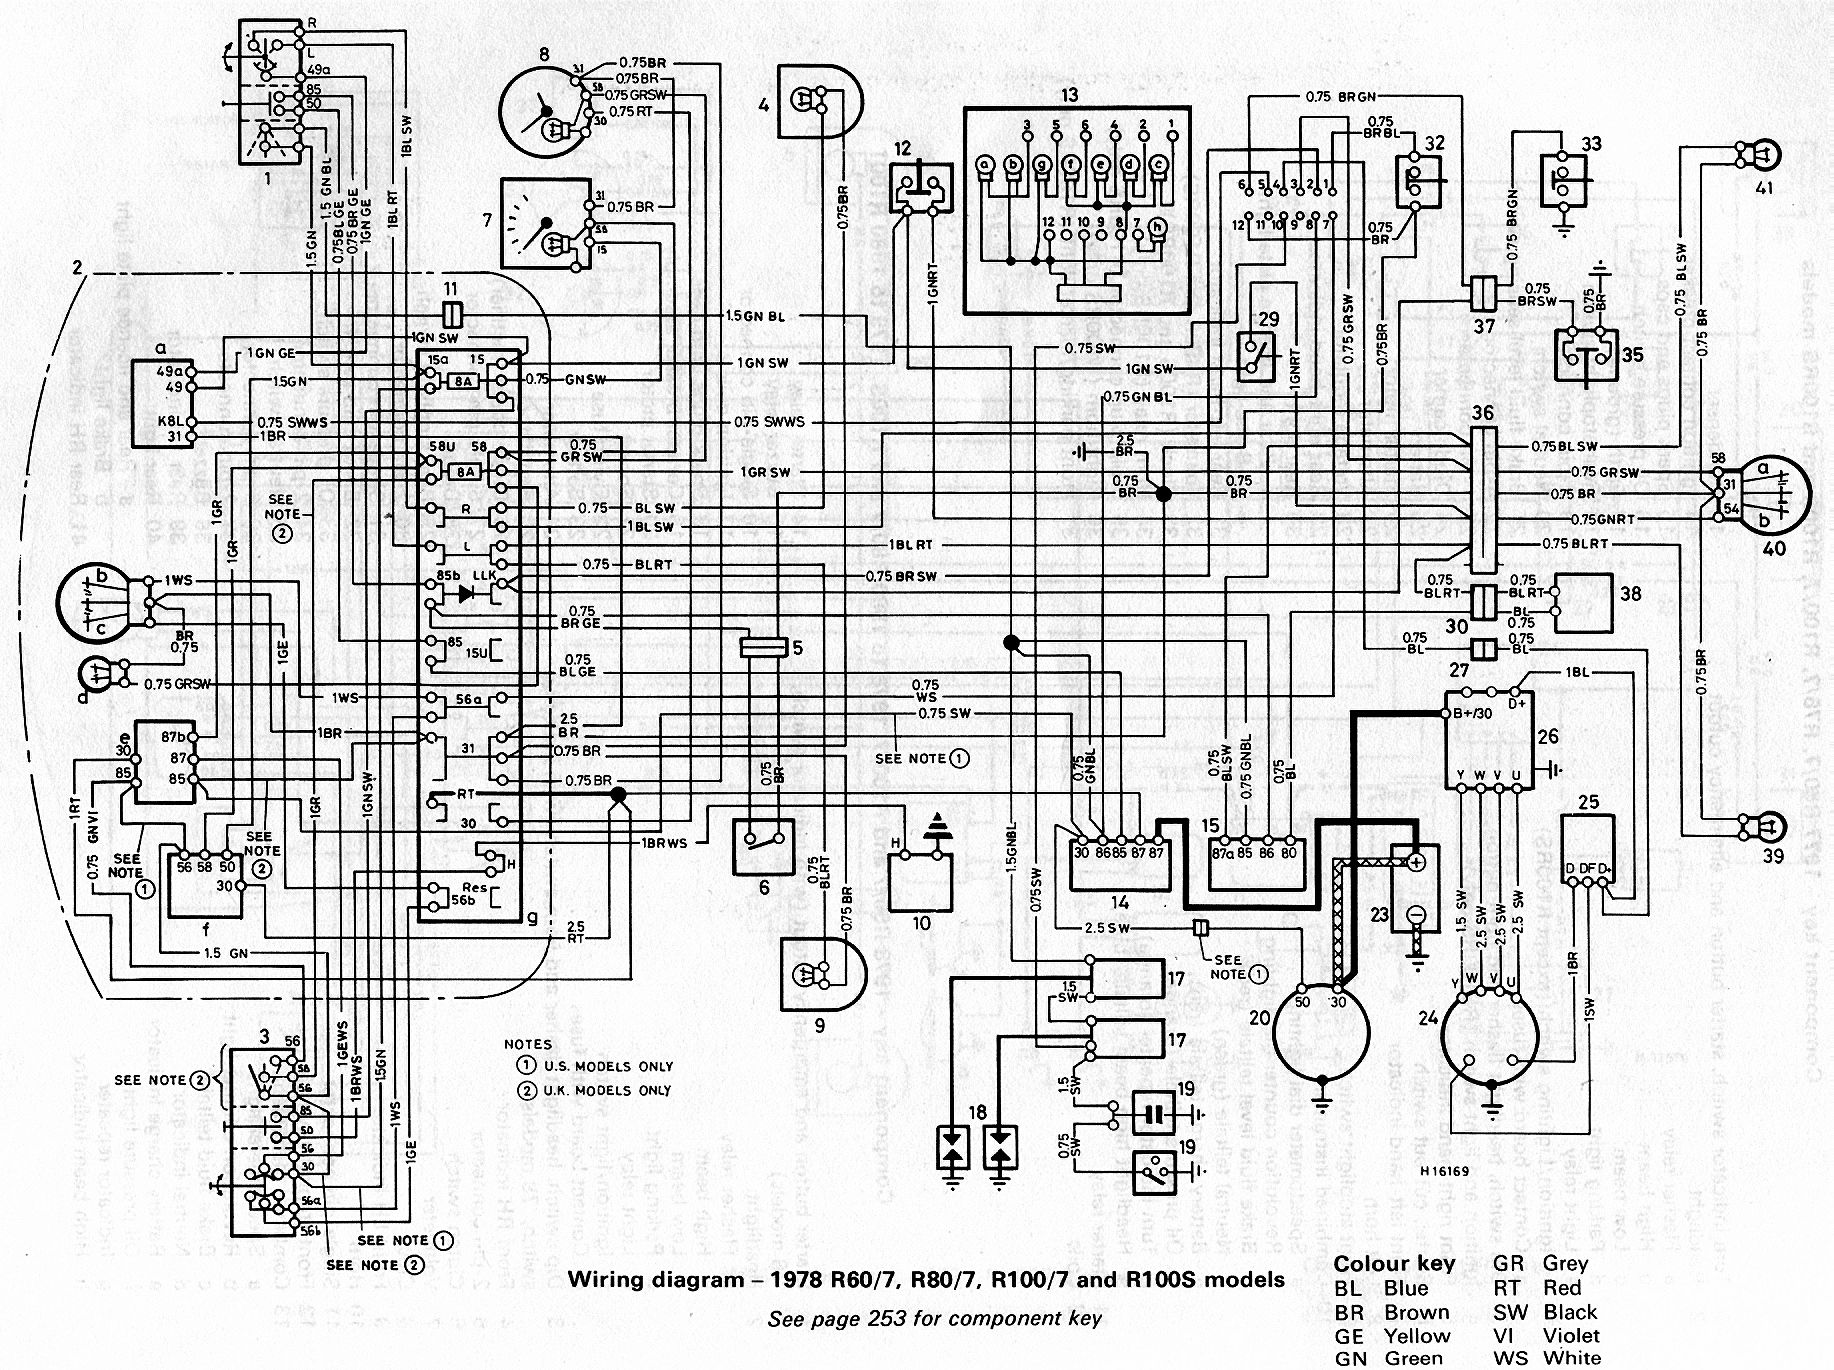 bmw r100 7 wiring diagram bmw 1984 r80/7 wiring diagram | chassis wire harness bmw r ... bmw r100 7 wiring diagram